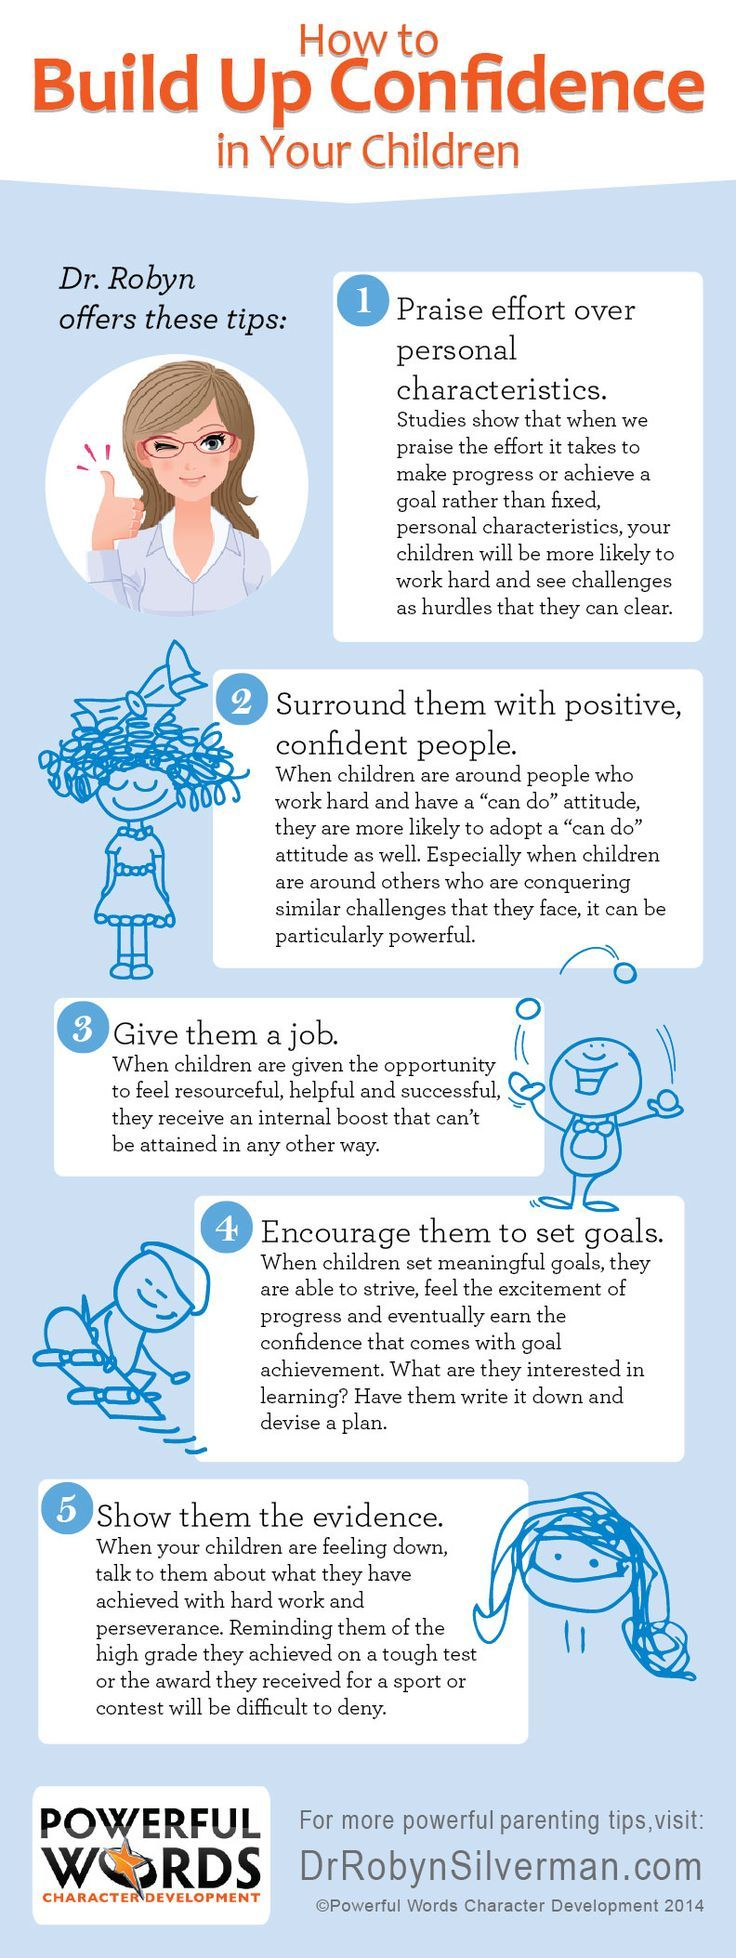 Great How To Build Up Confidence In Your Children #powerfulwords #drrobyn